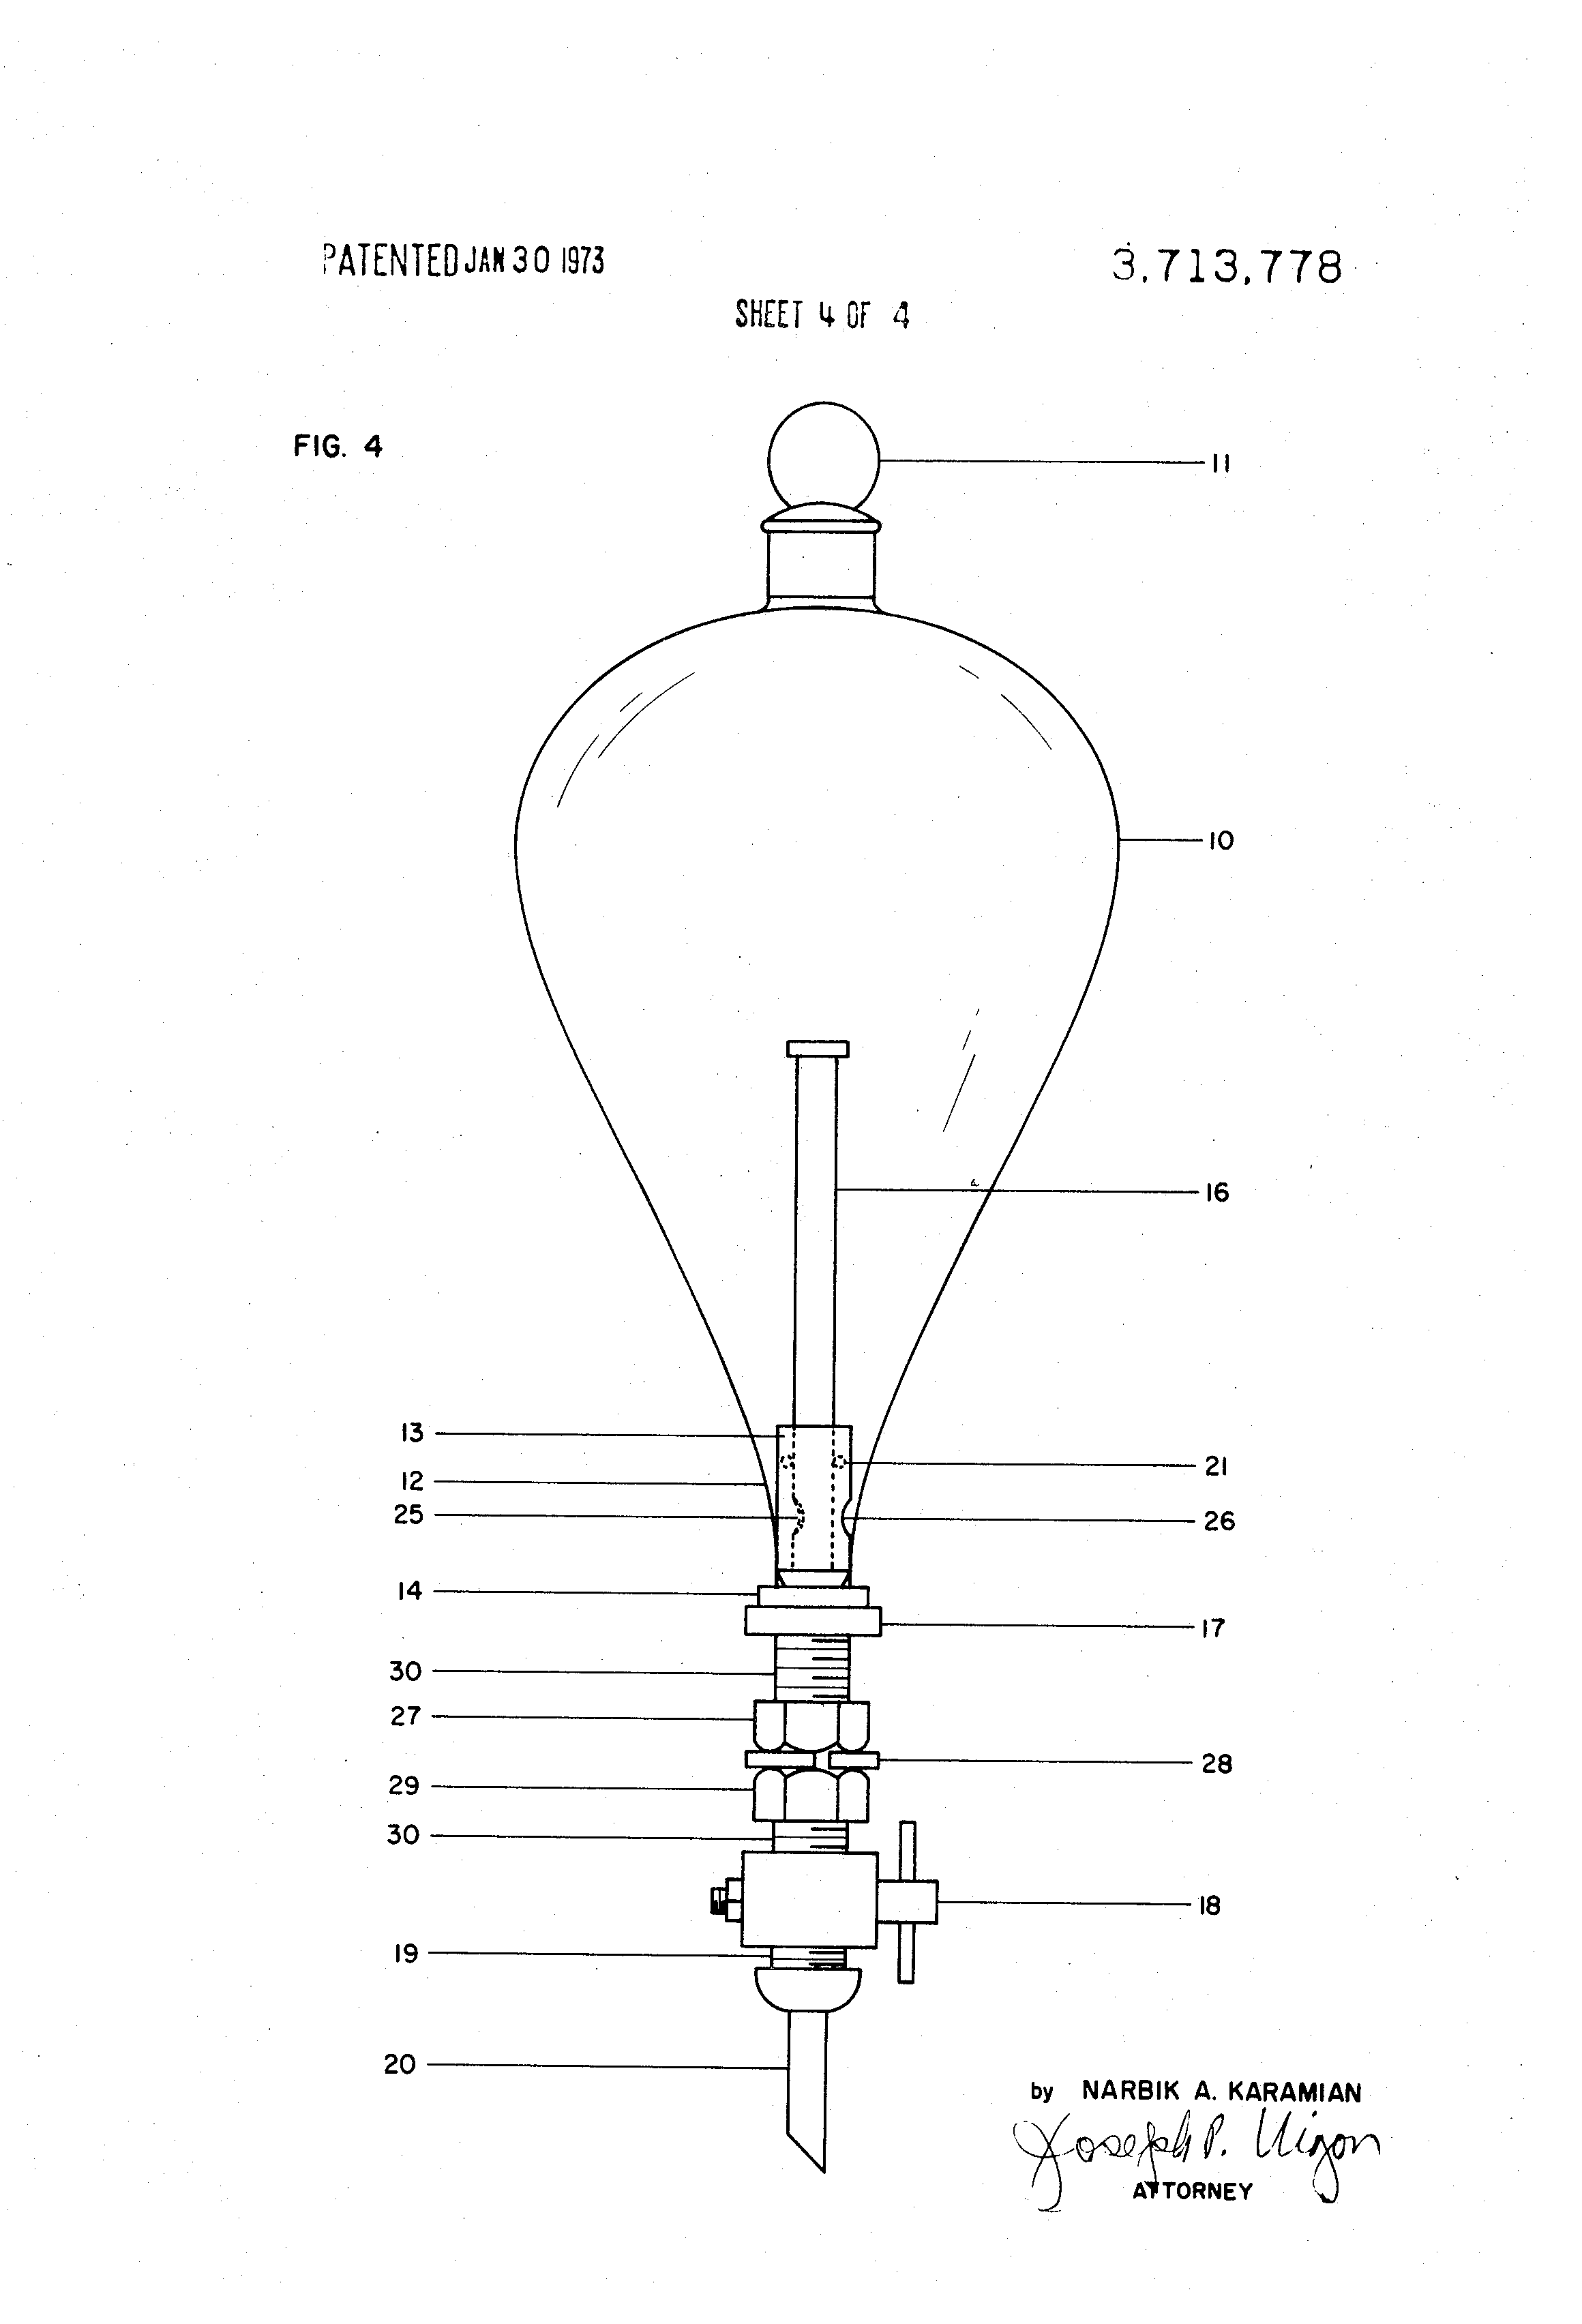 Separatory funnel diagram free download wiring diagram patent us3713778 separatory funnel google patents separatory funnel diagram 39 separatory funnel structure separatory flask pooptronica Images